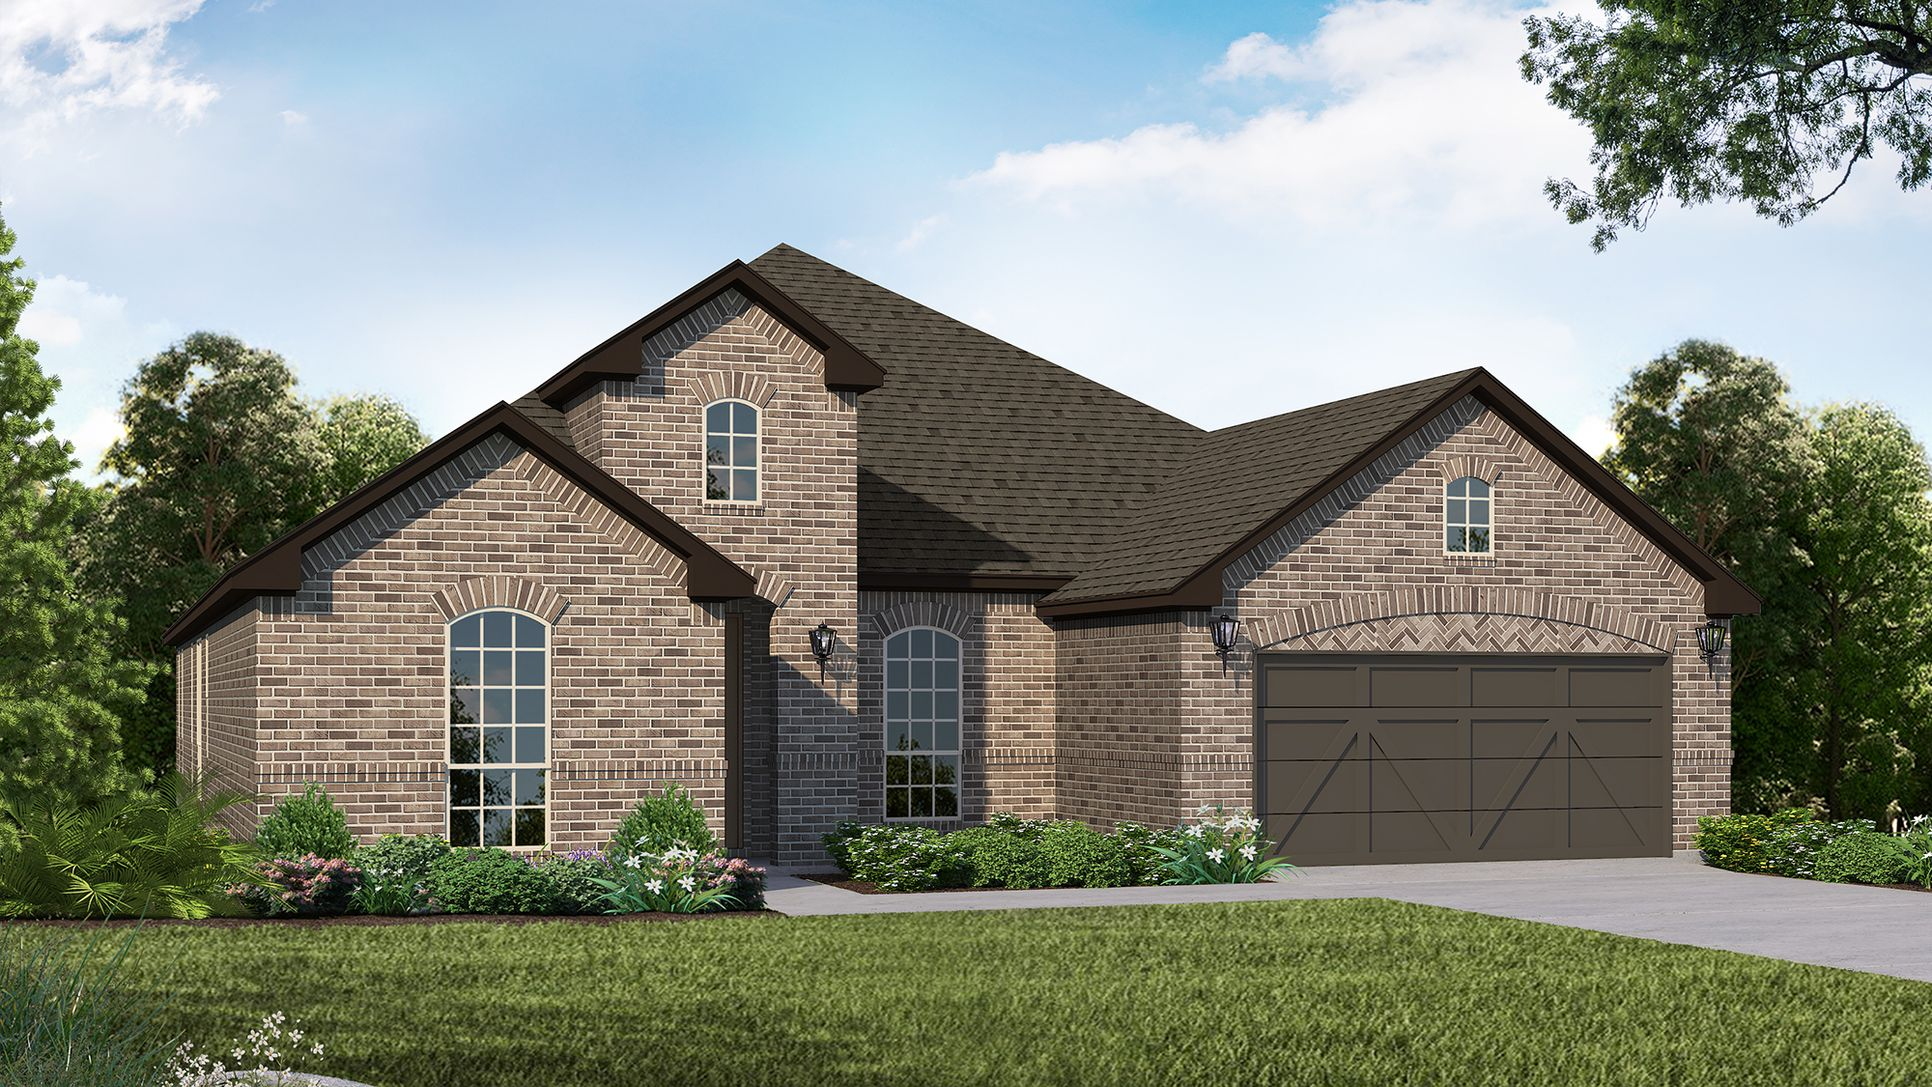 Exterior:Plan 1688 Elevation A by American Legend Homes